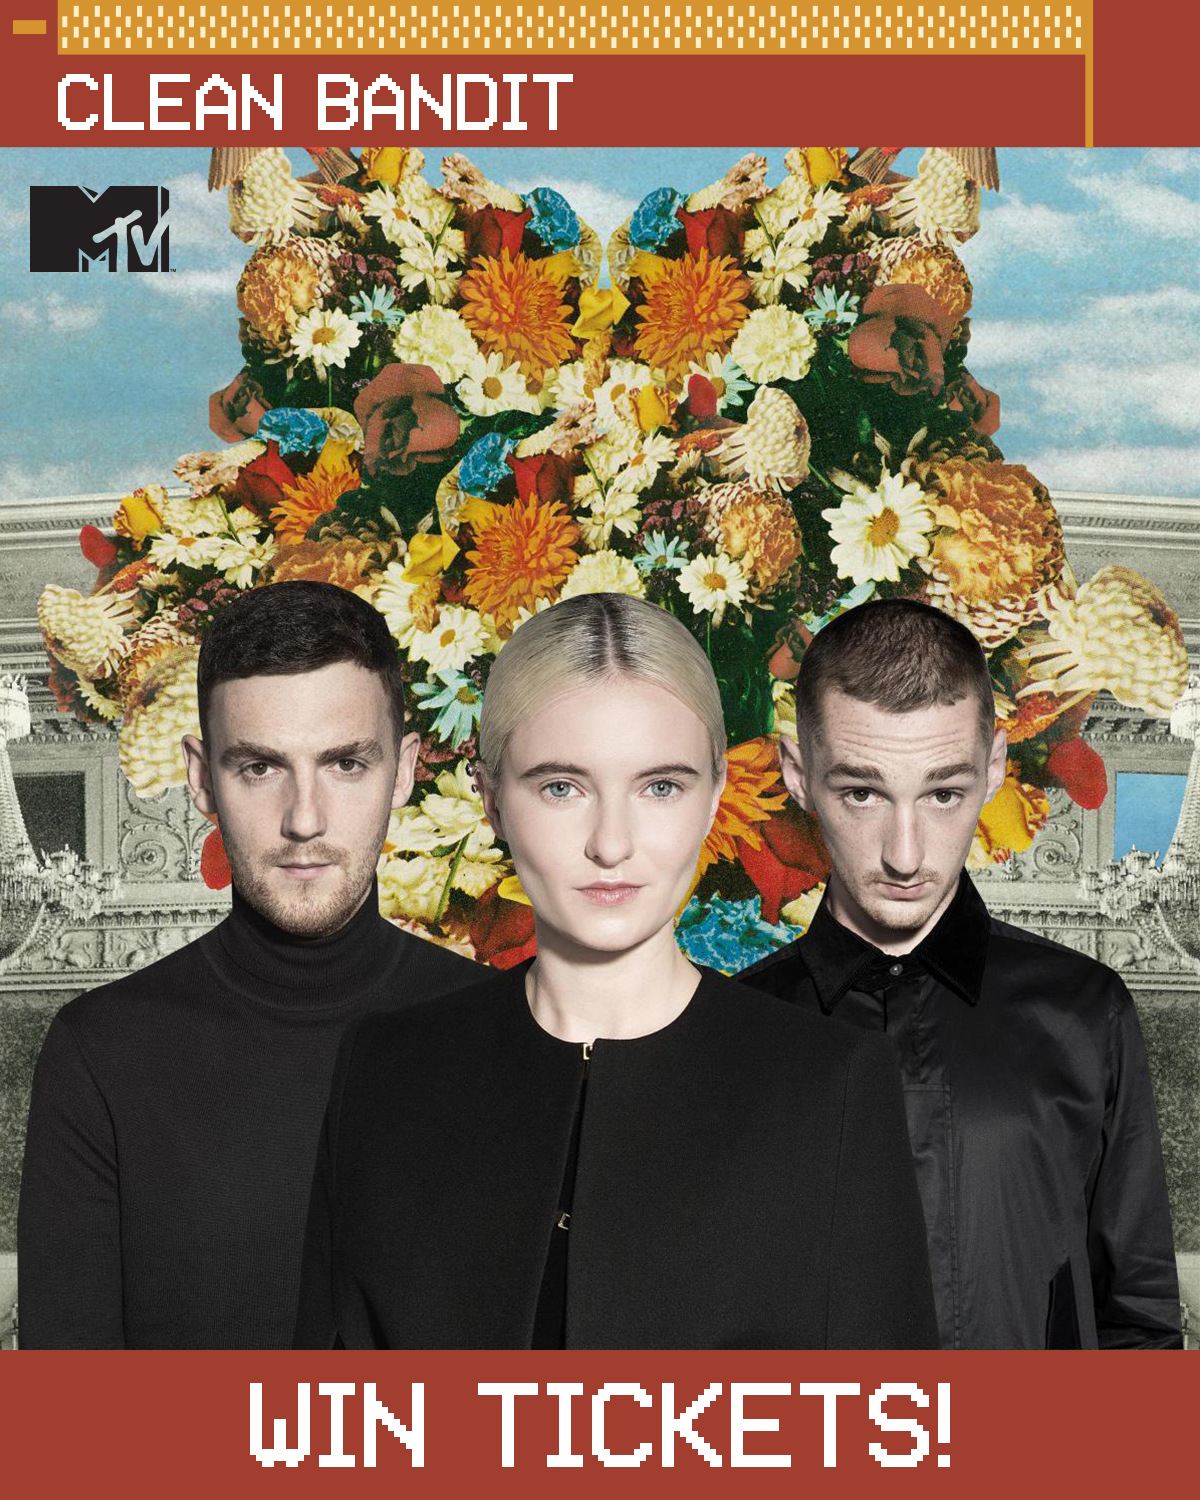 Contest win vip tix meet and greet with clean bandit in to stand a chance to win all you need to do is tag a friend on our contest post at facebooktwitterinstagram and tell us your favourite clean bandit song kristyandbryce Images